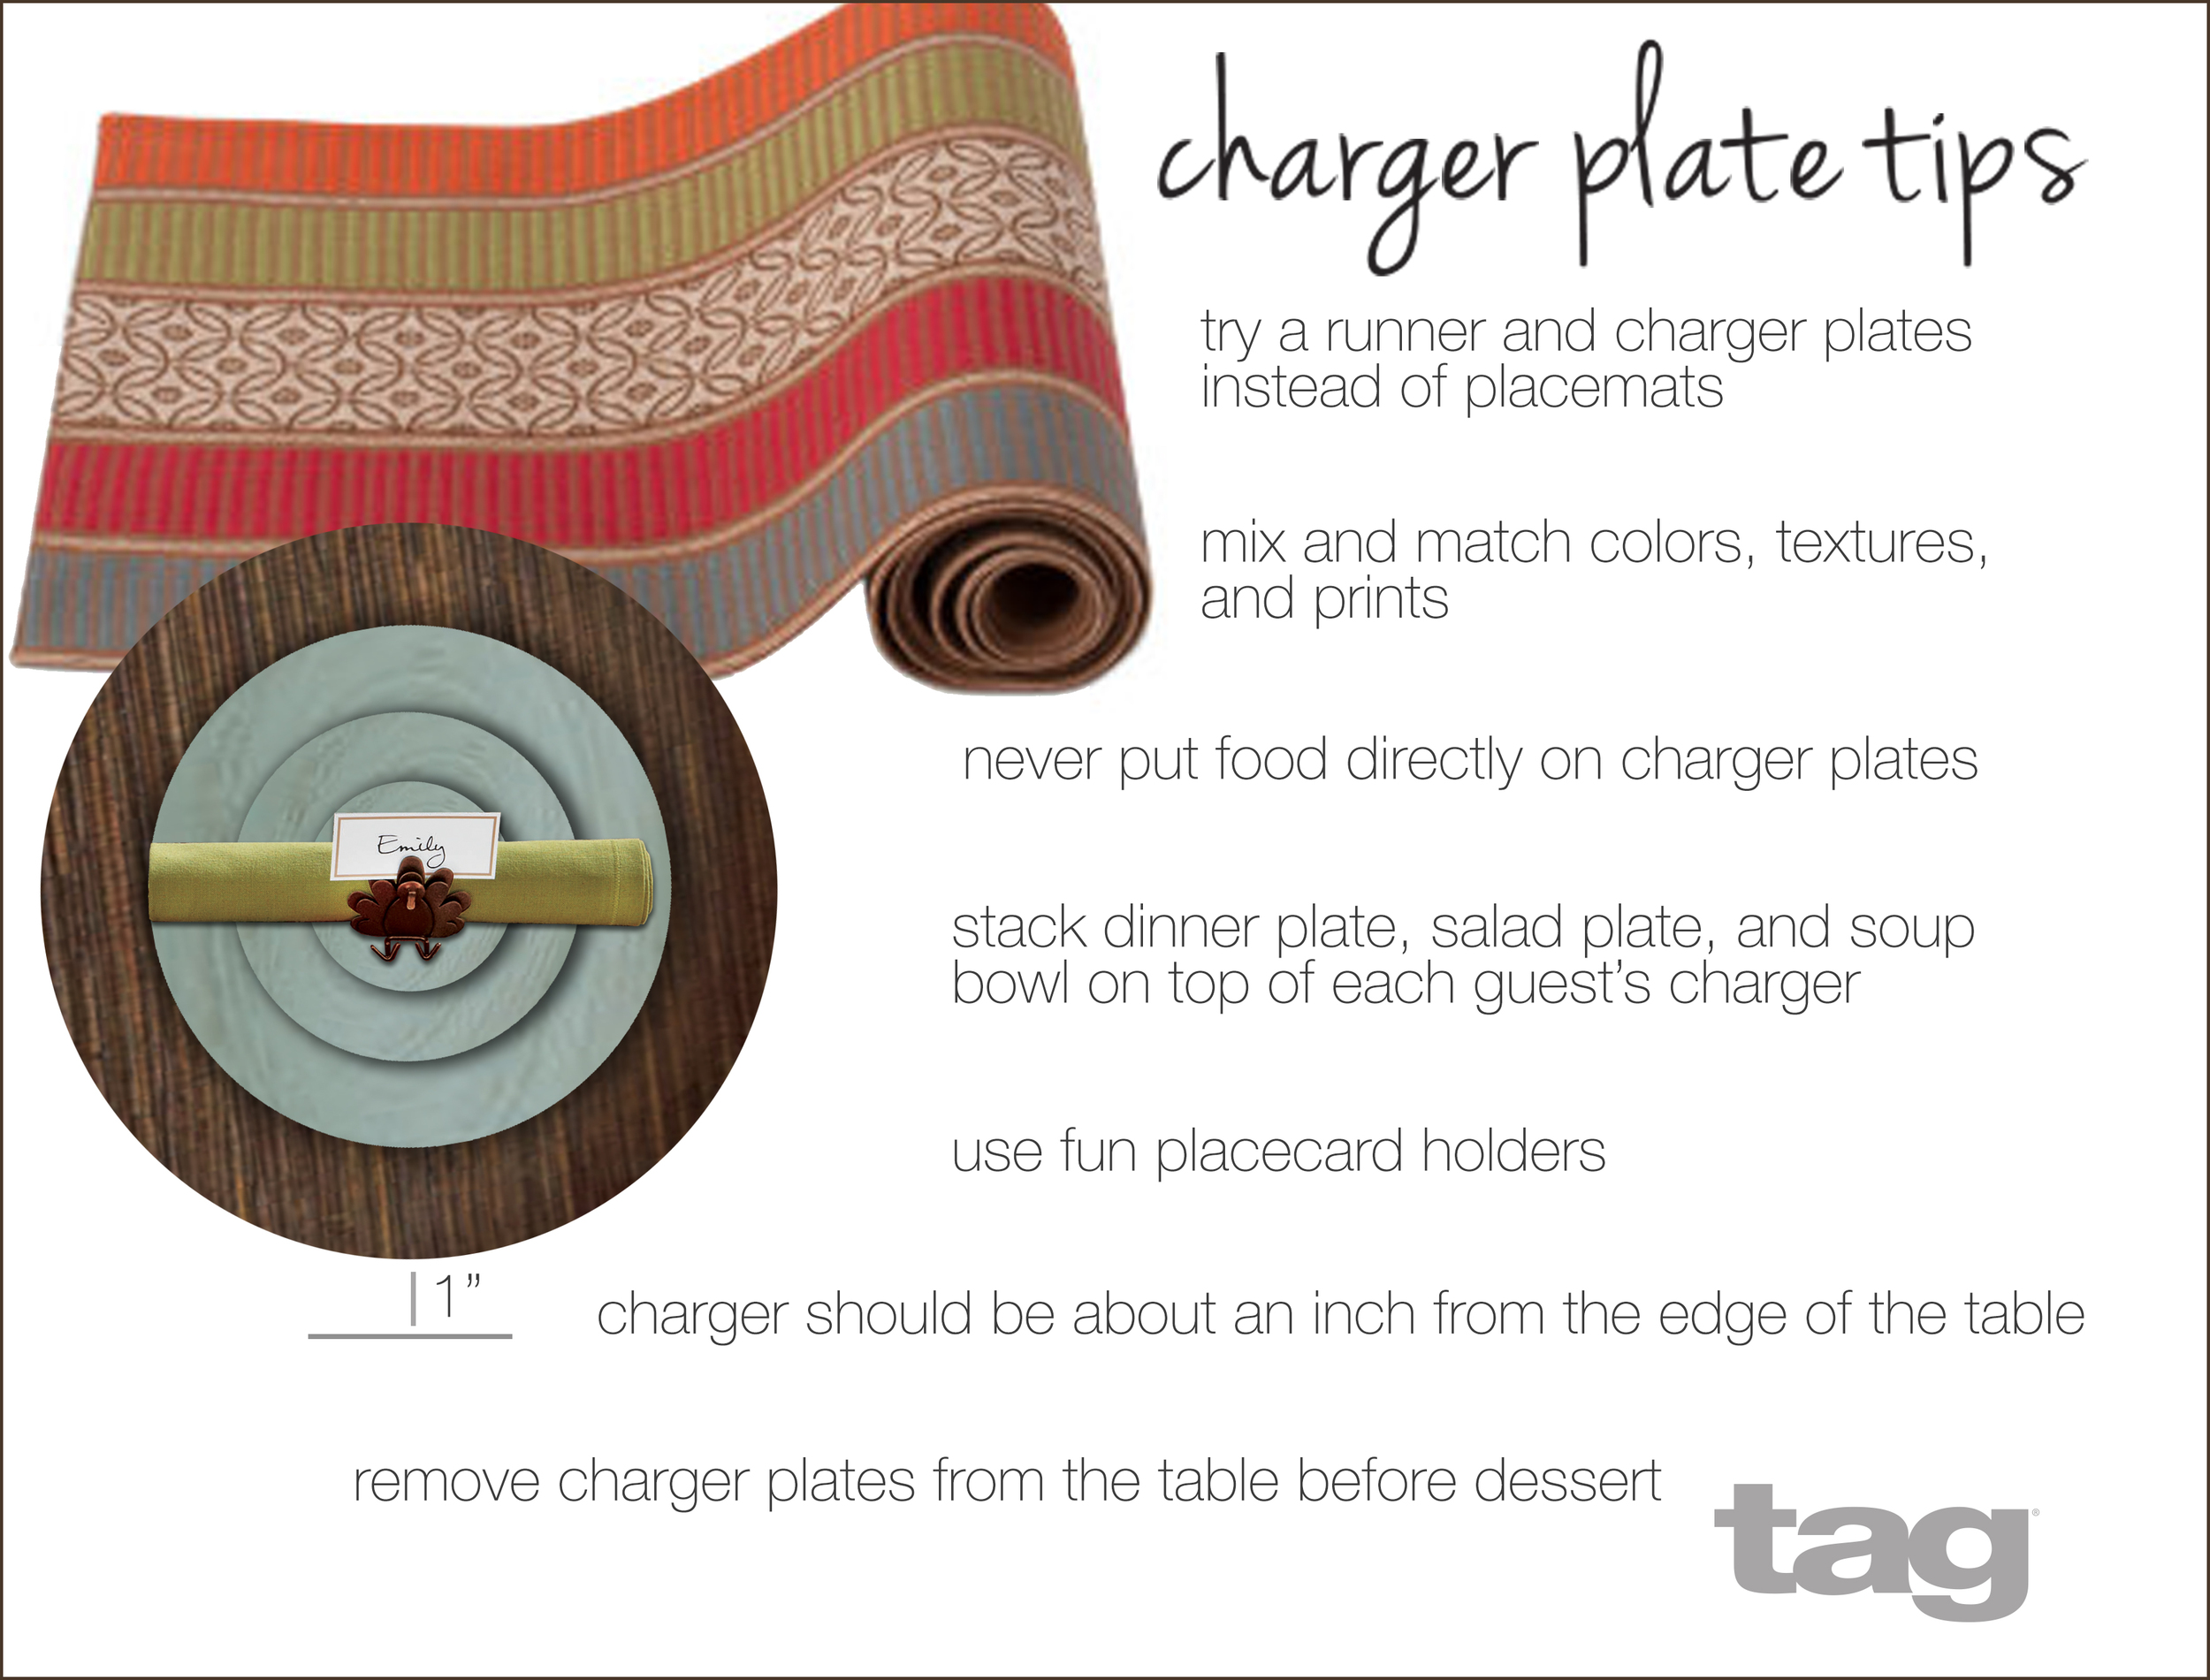 tag charger plate tips.jpg